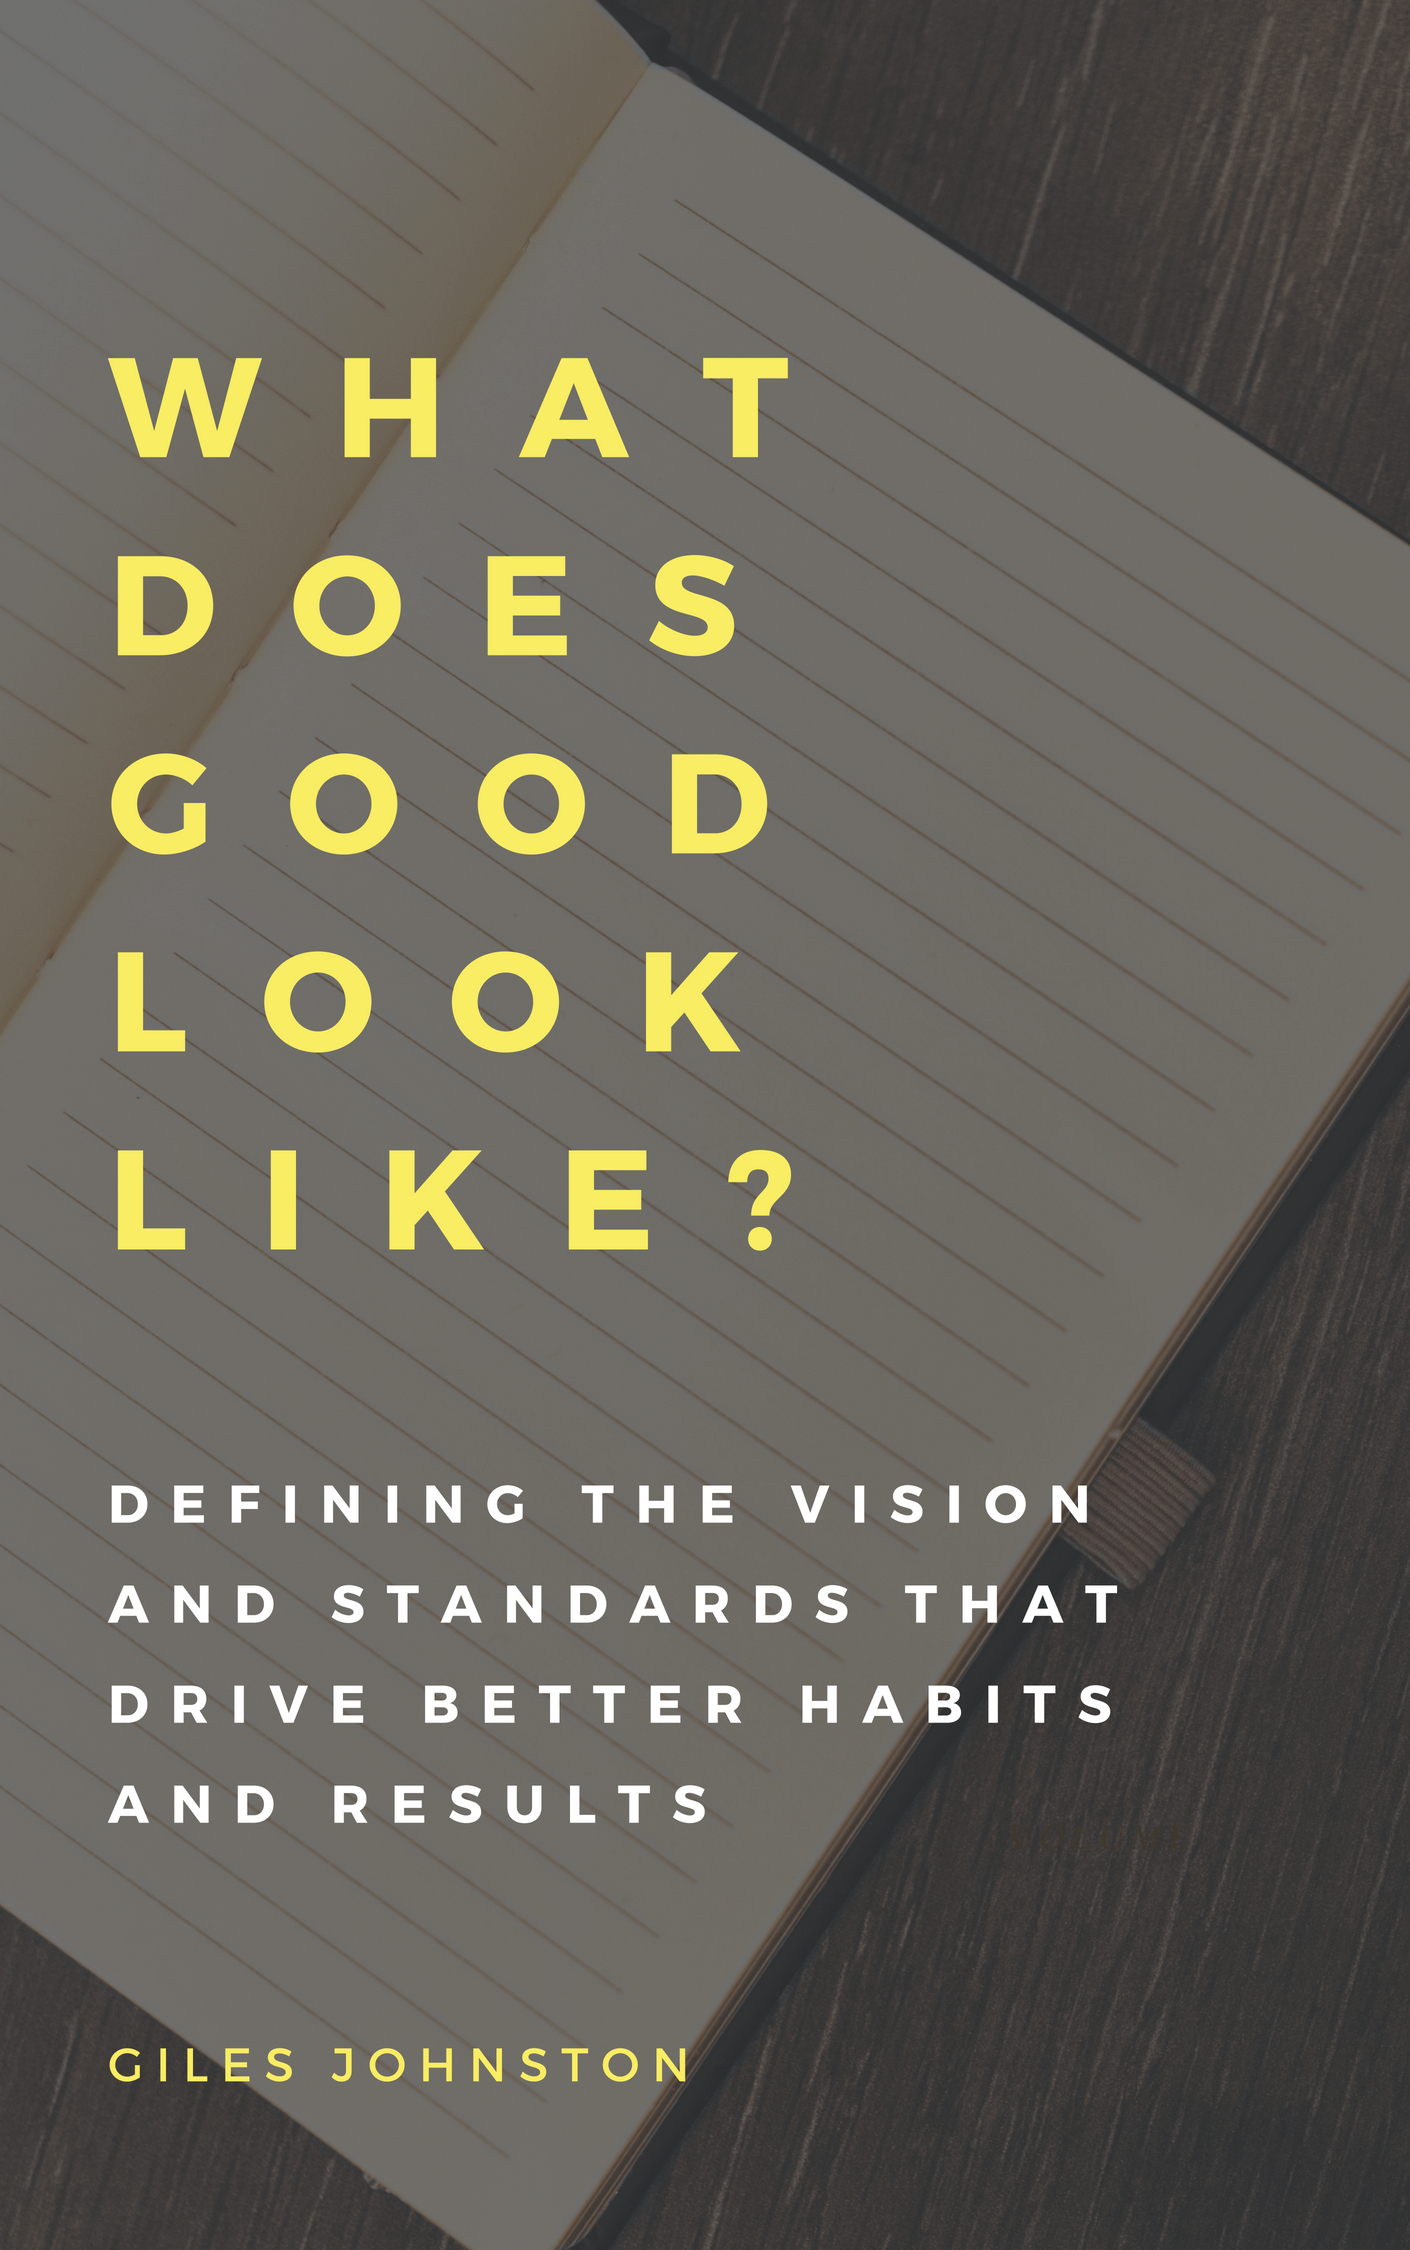 What Does Good Look Like? Bridging the Gap Between Vision and Performance